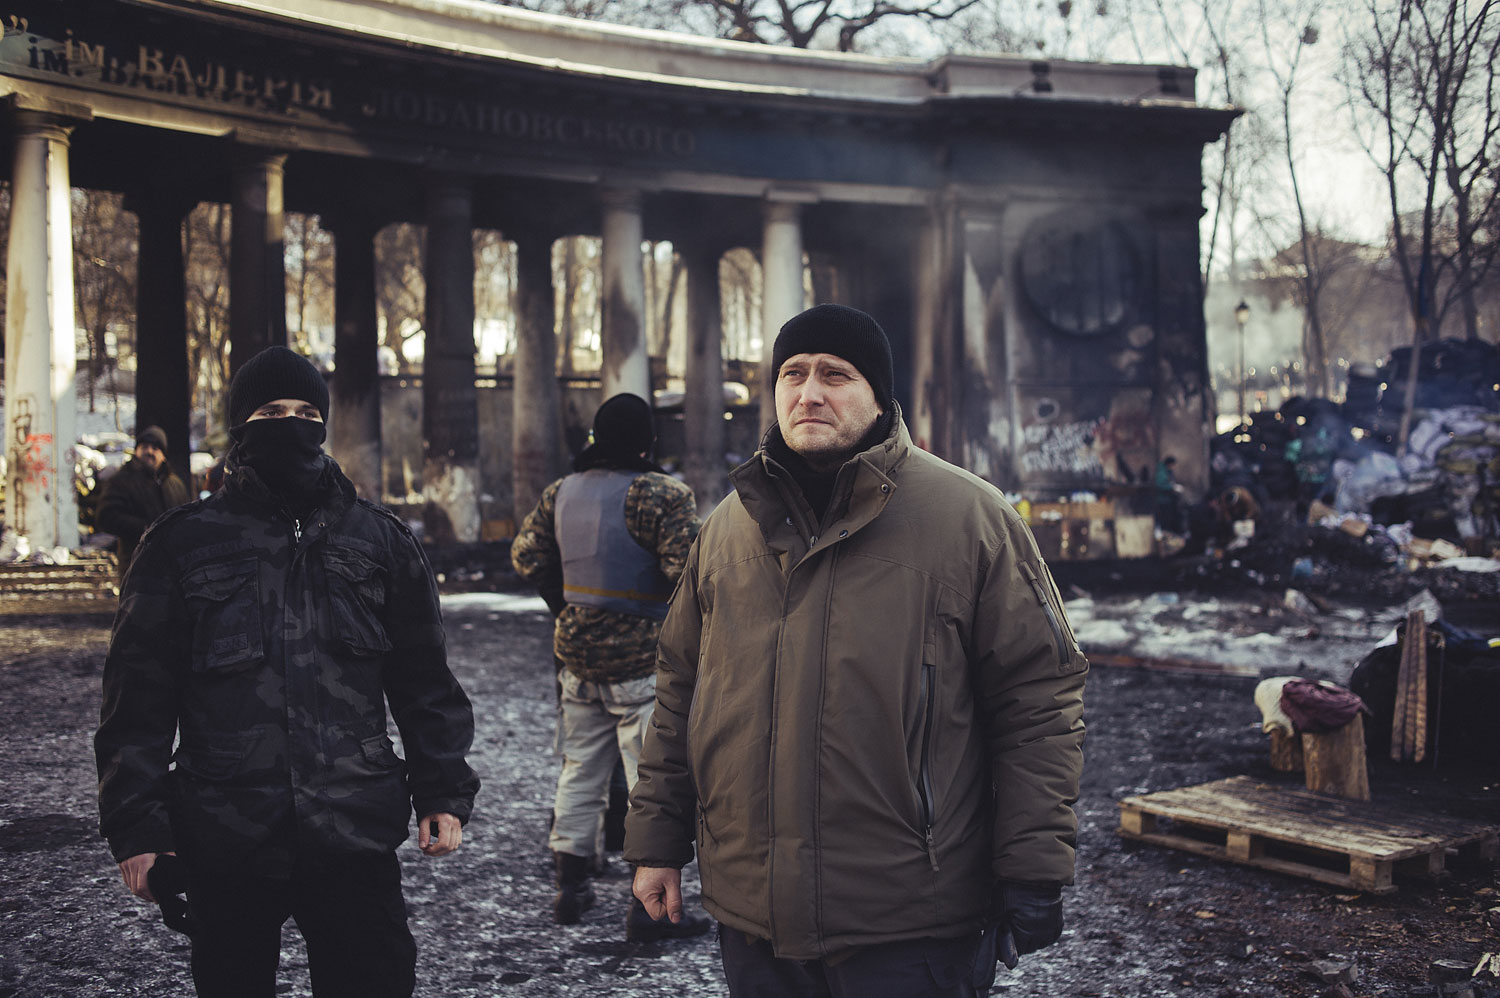 Dmitro Yarosh, the leader of Pravy Sektor, a coalition of ultra-nationalist groups in Ukraine, stands with some of his fighters at the scene of the worst clashes last month between the group's fighters and police in Kiev.